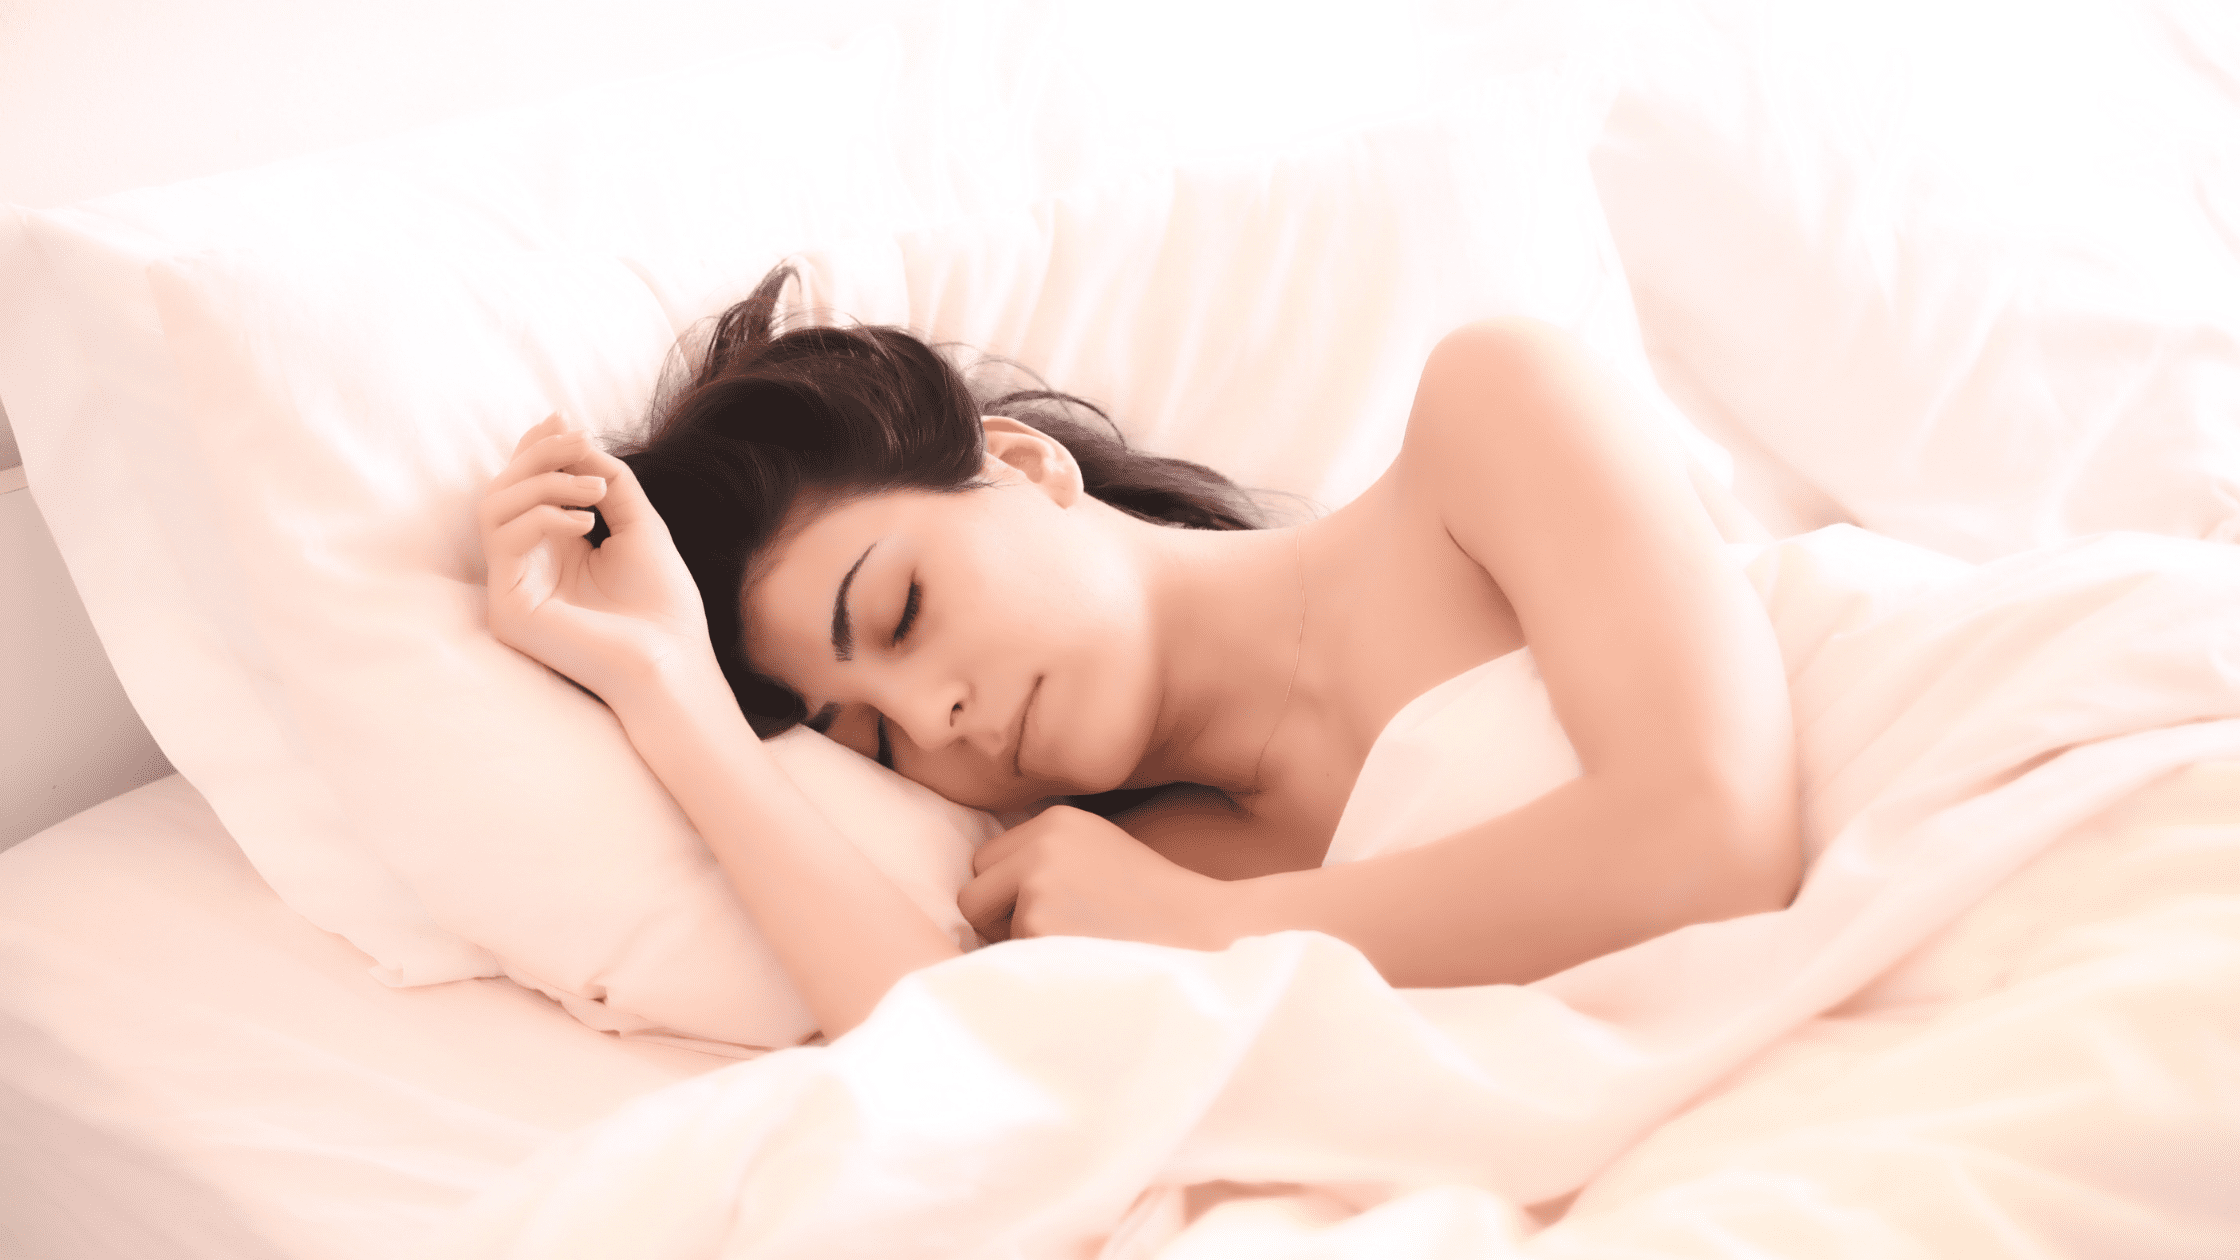 young woman sleeping in bed with pink sheets after using cannabis